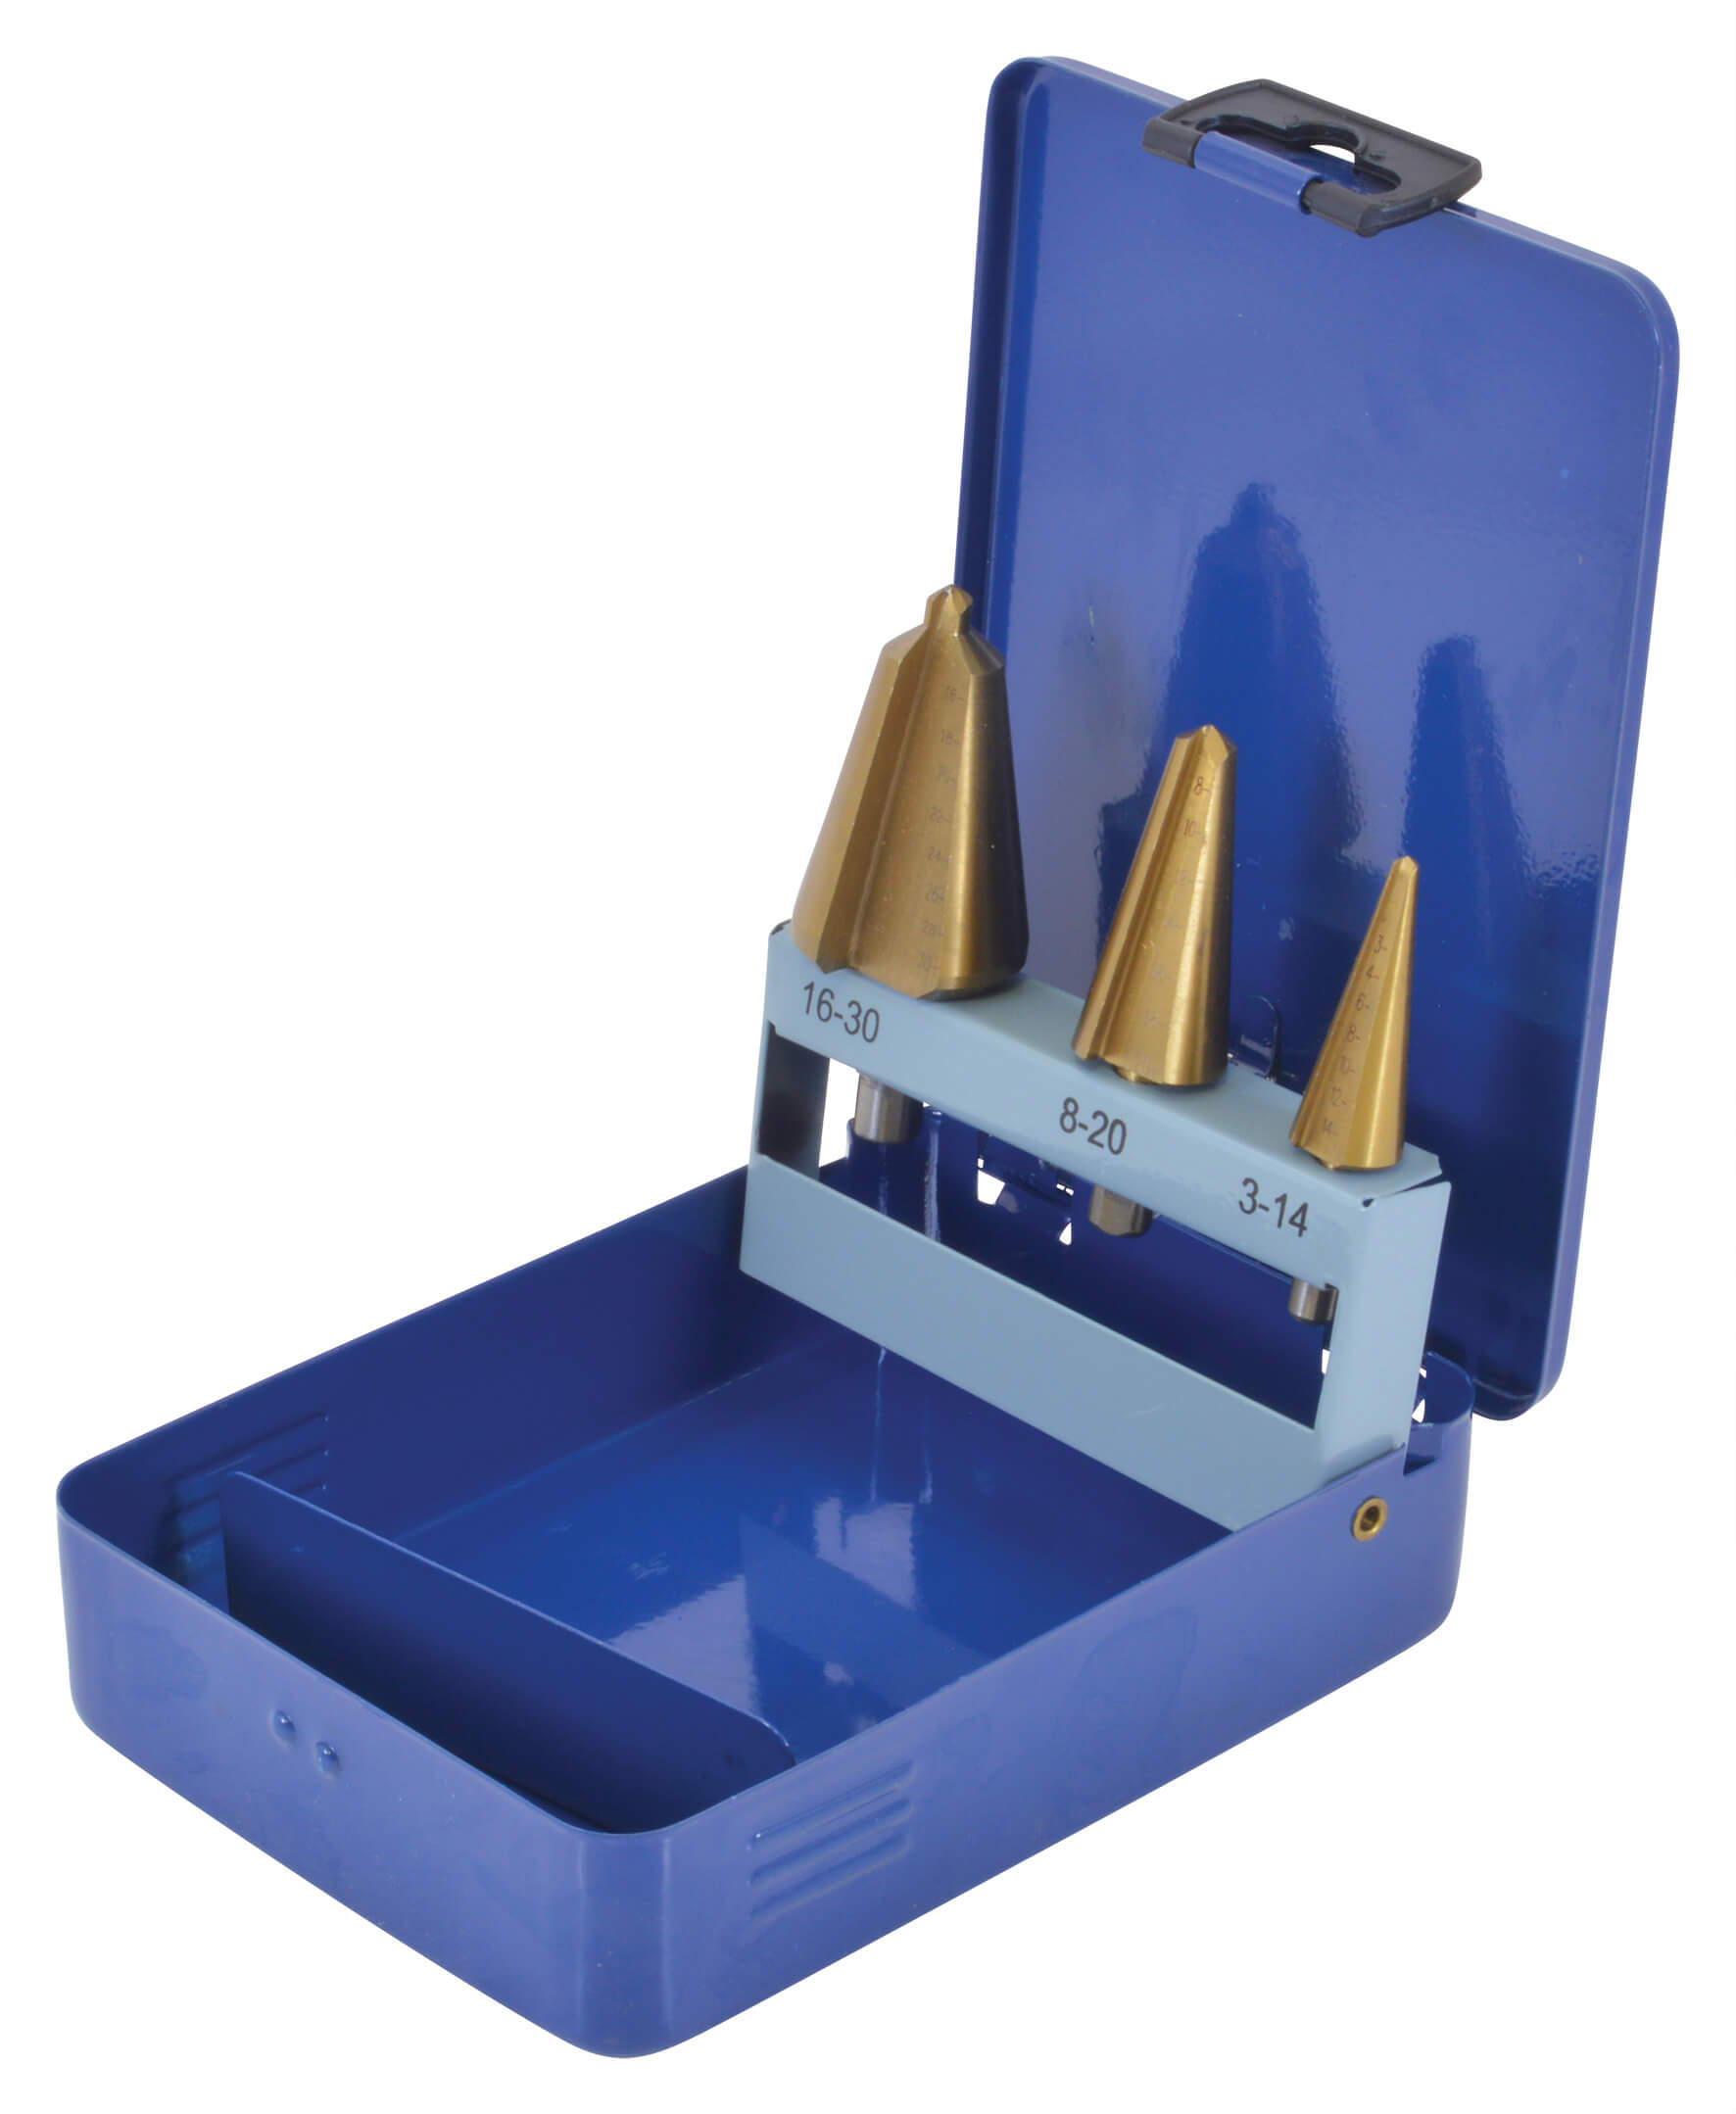 Borman Cone Drill Set - 3 Piece